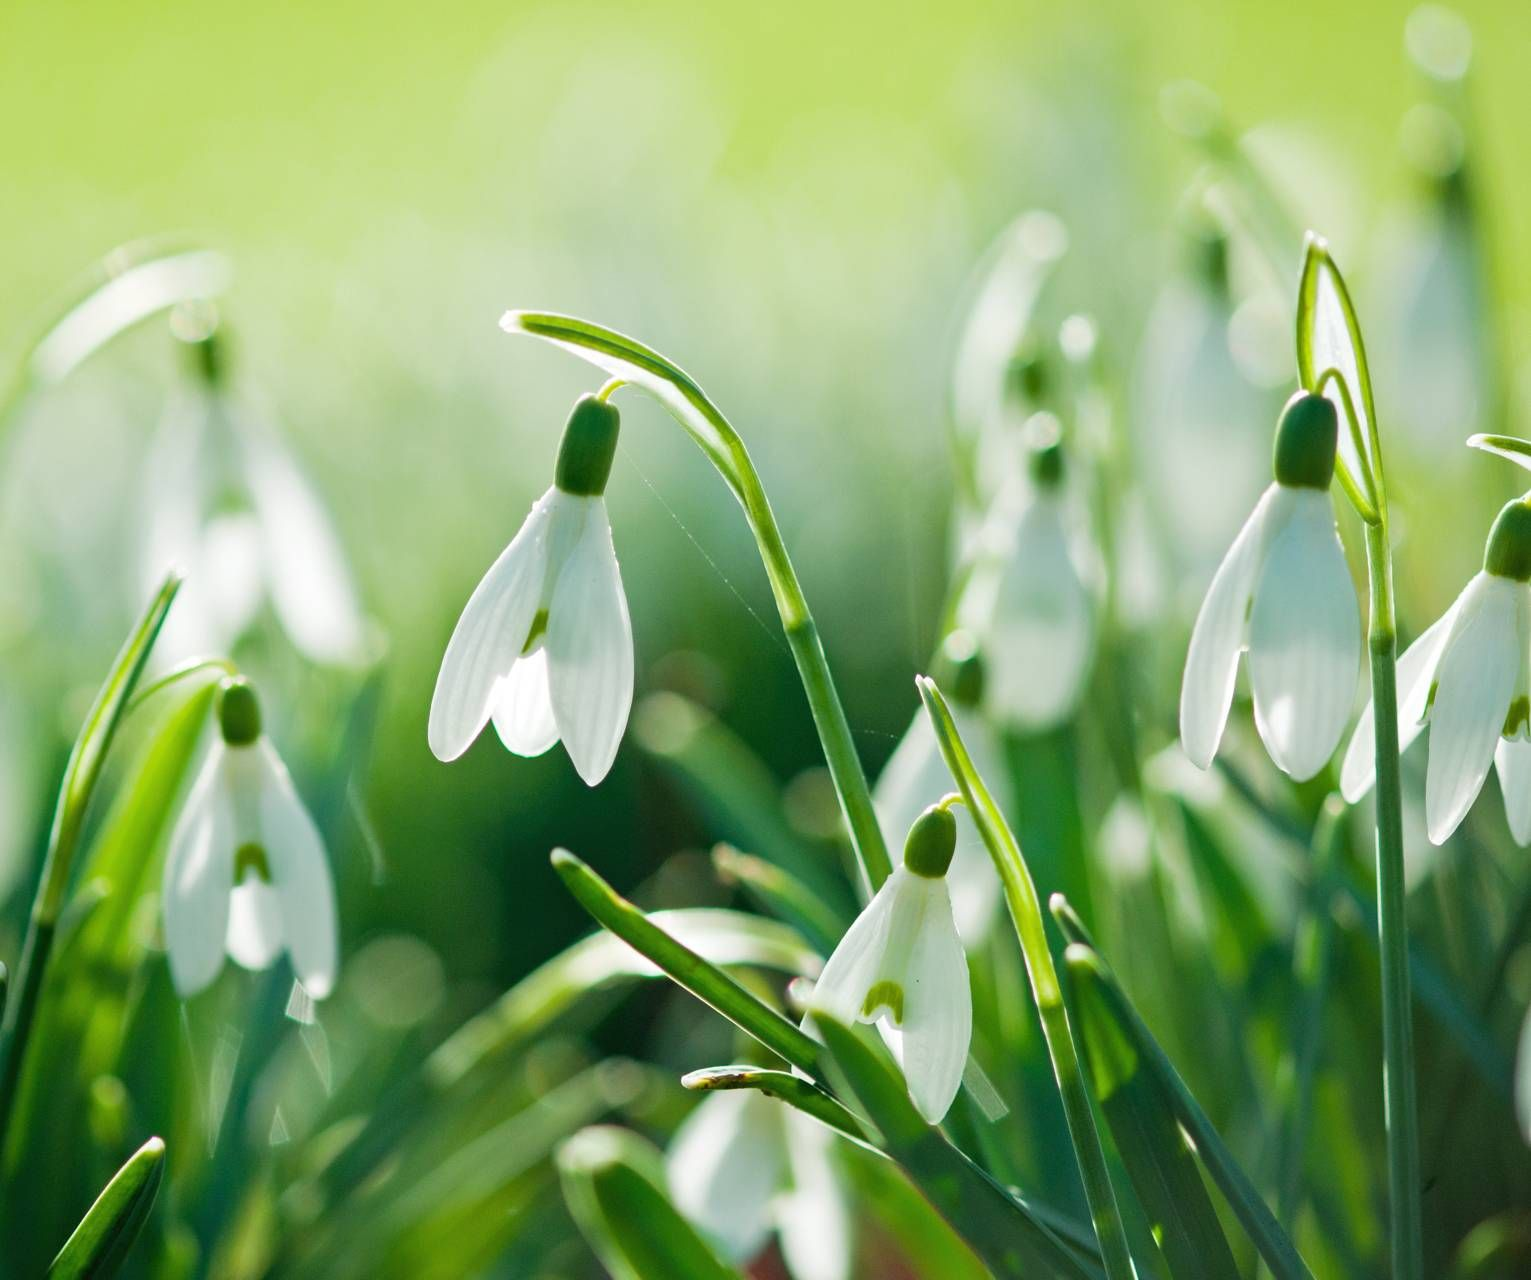 Snowdrops Cool Wallpapers For Phones Spring Wallpaper Phone Wallpaper